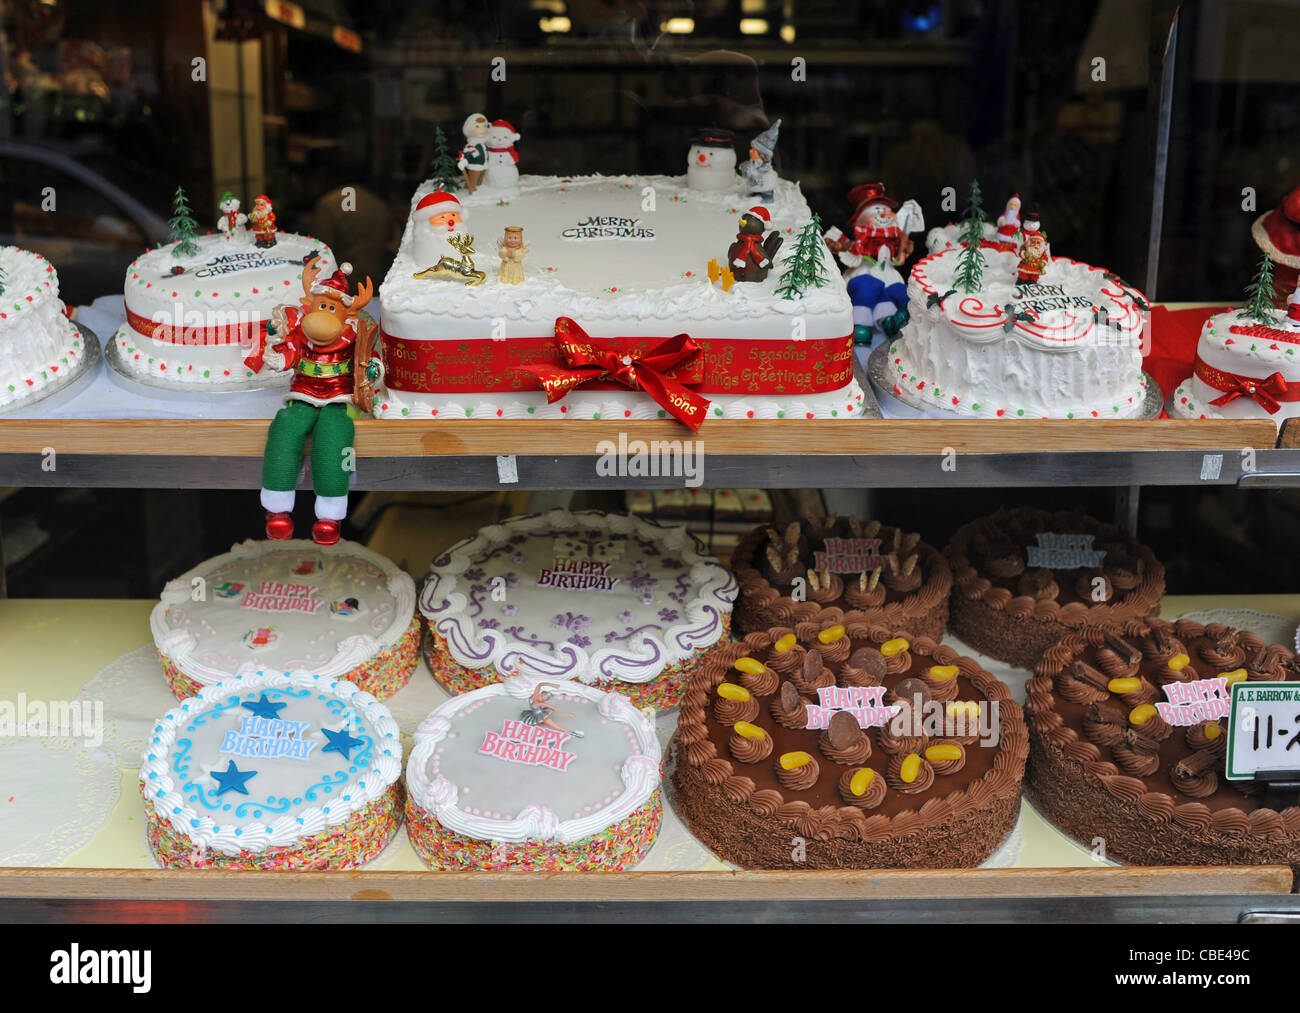 Display of Christmas and Birthday cakes in window of shop in Stock